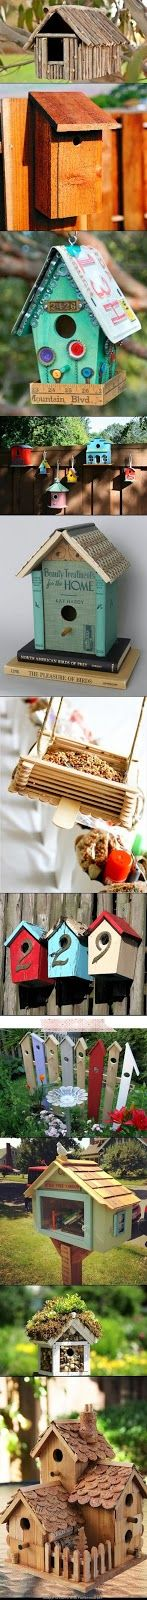 DIY Amazing Birdhouse Want to make one for the treehouse with my old license plate